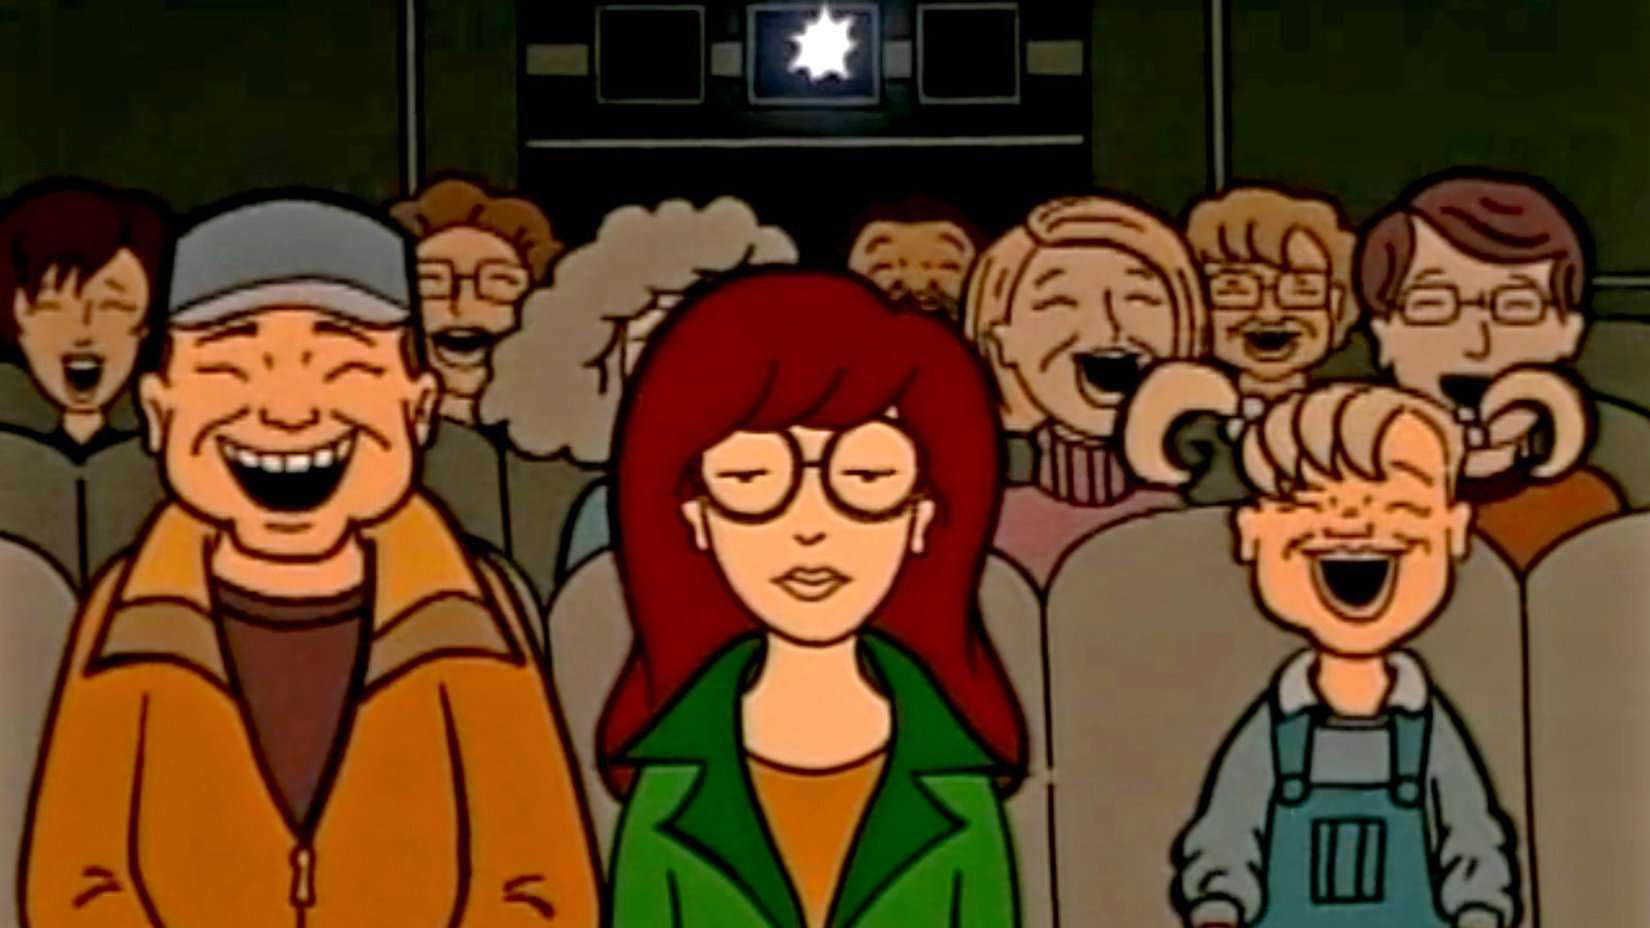 o be fair, feeling so pessimistic about a Daria revival is a very Daria thing to do, so maybe this reboot isn't off to a terrible start.